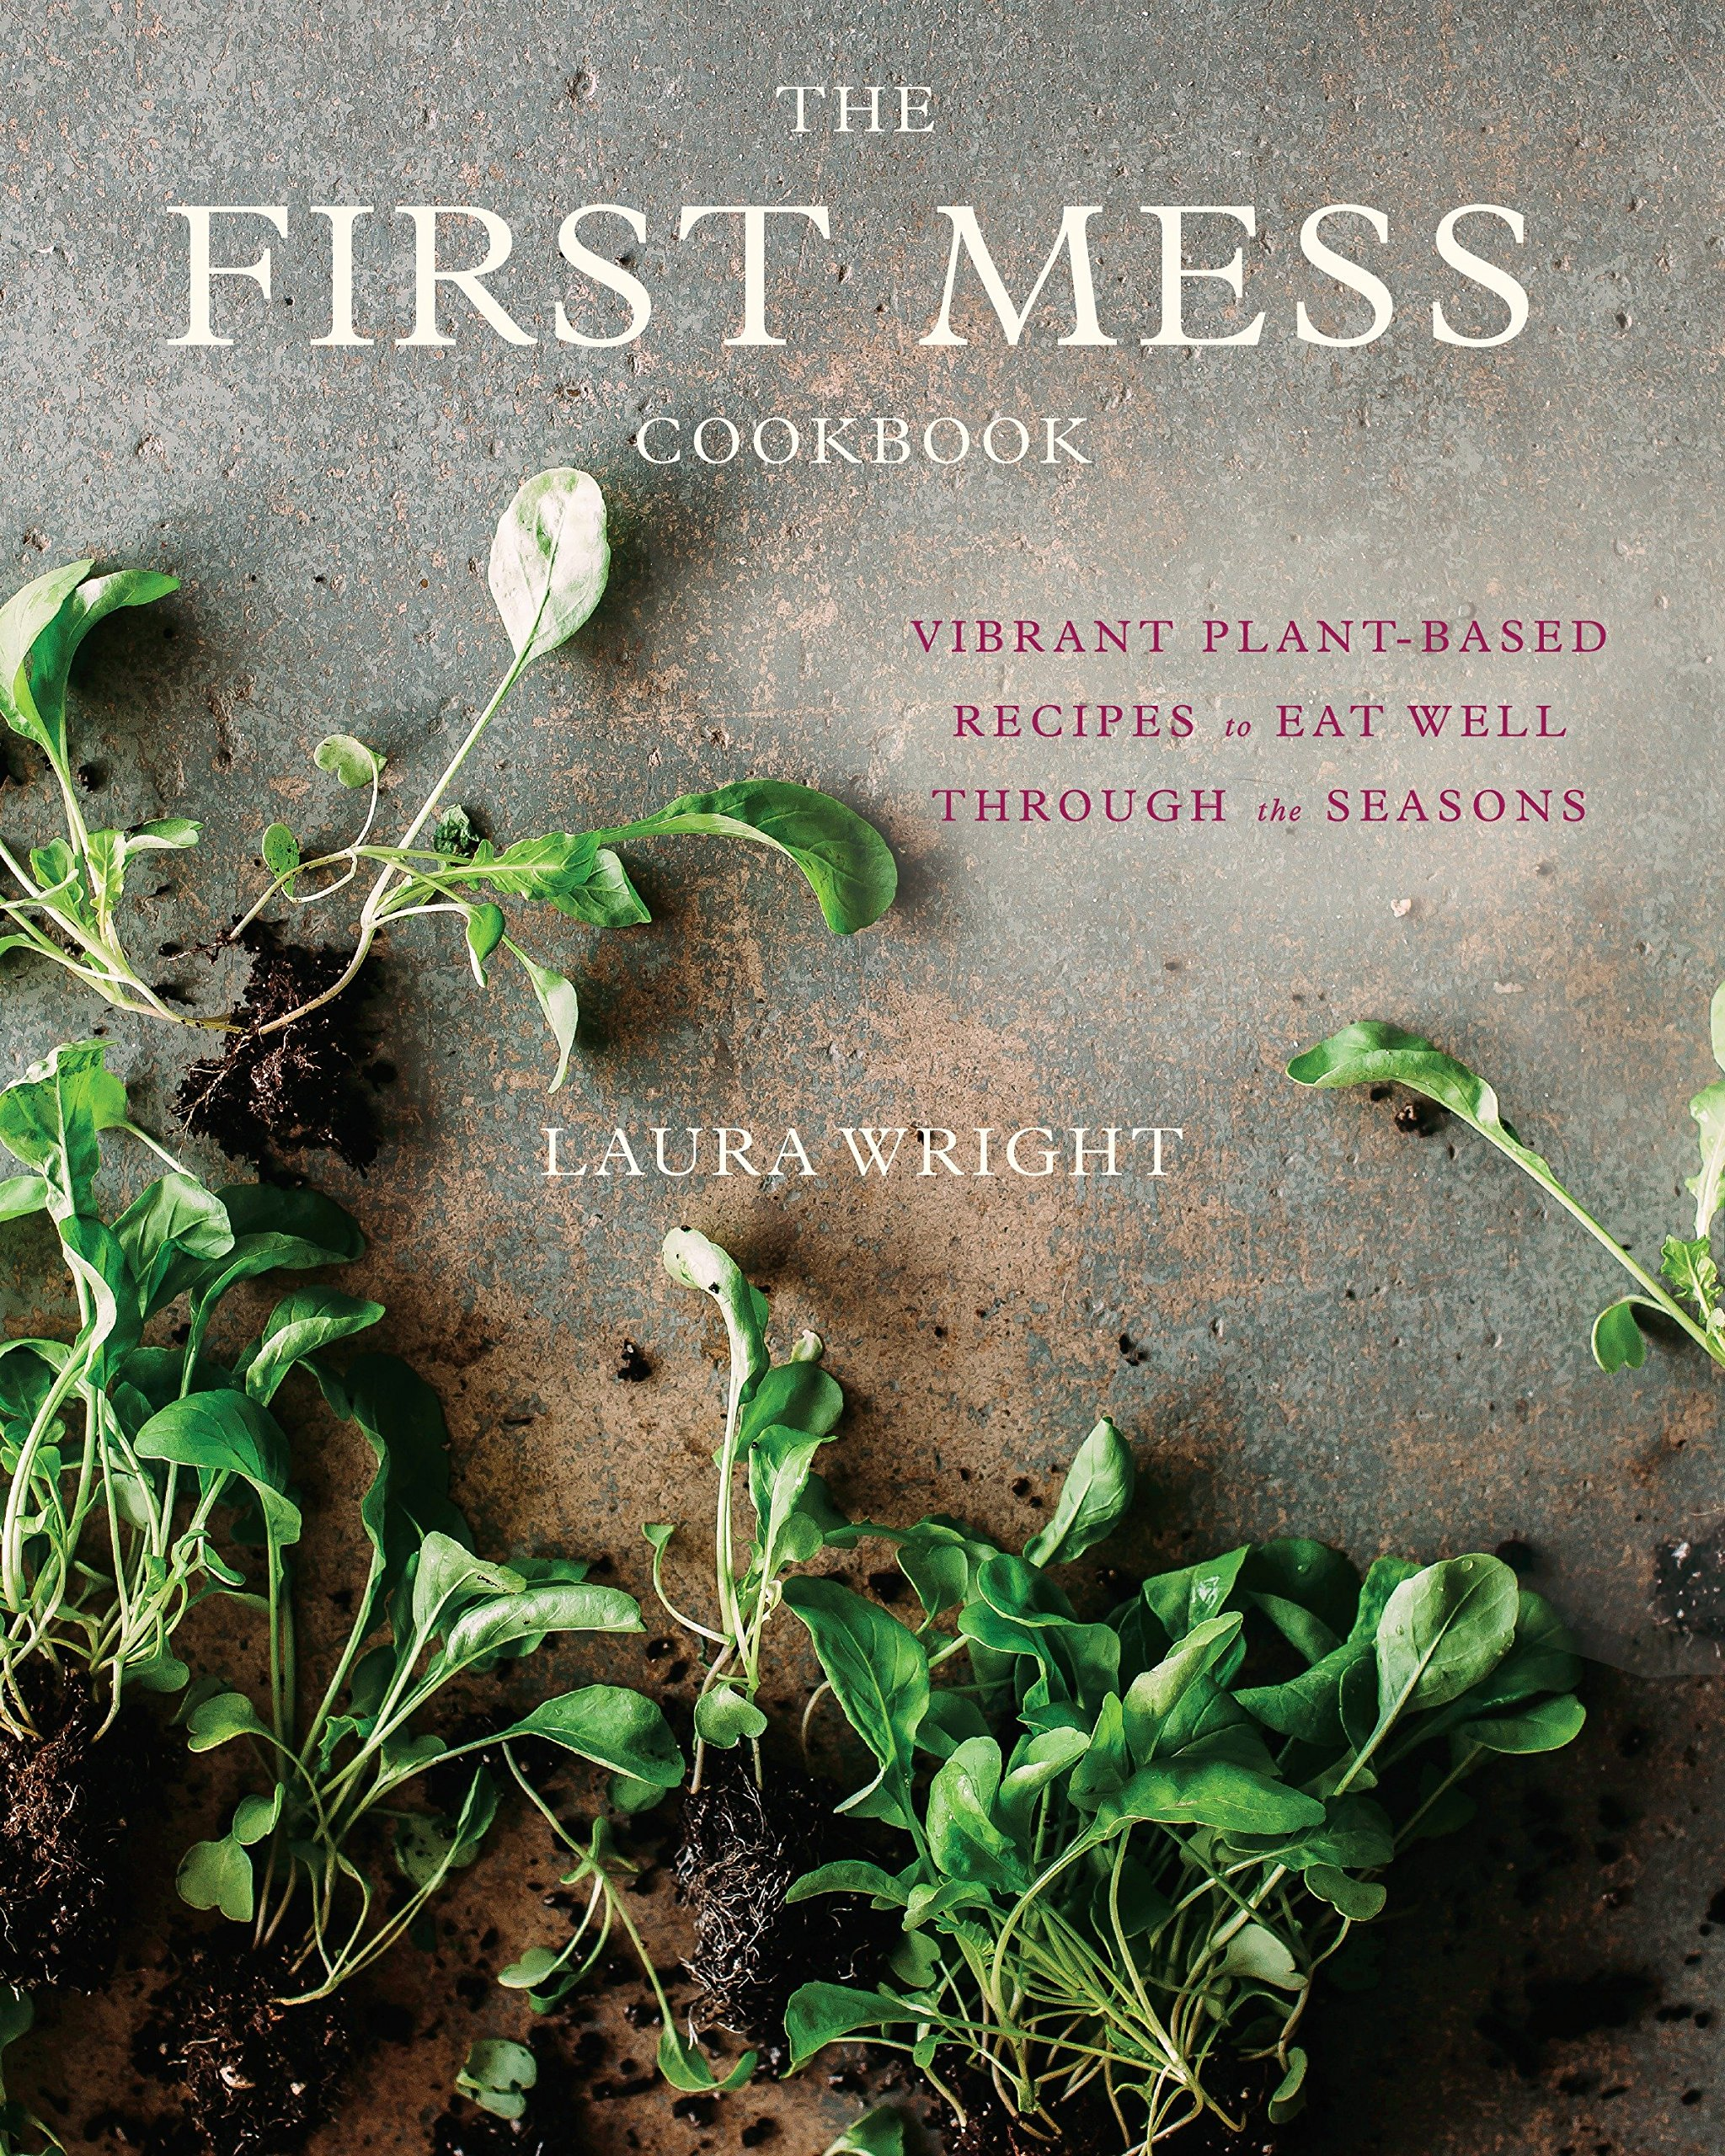 The First Mess Cookbook: Vibrant Plant-Based Recipes to Eat Well Through the Seasons by Avery